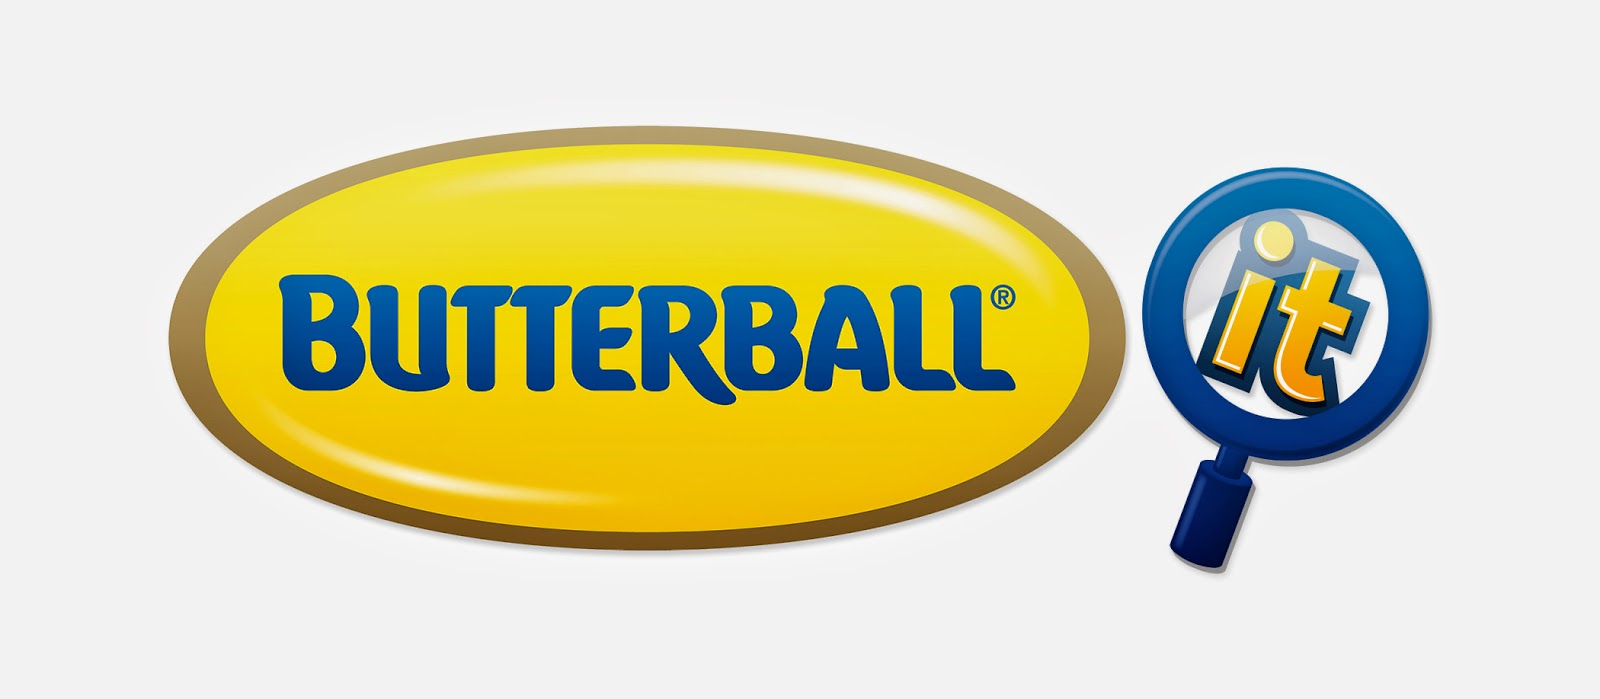 Butterball It logo